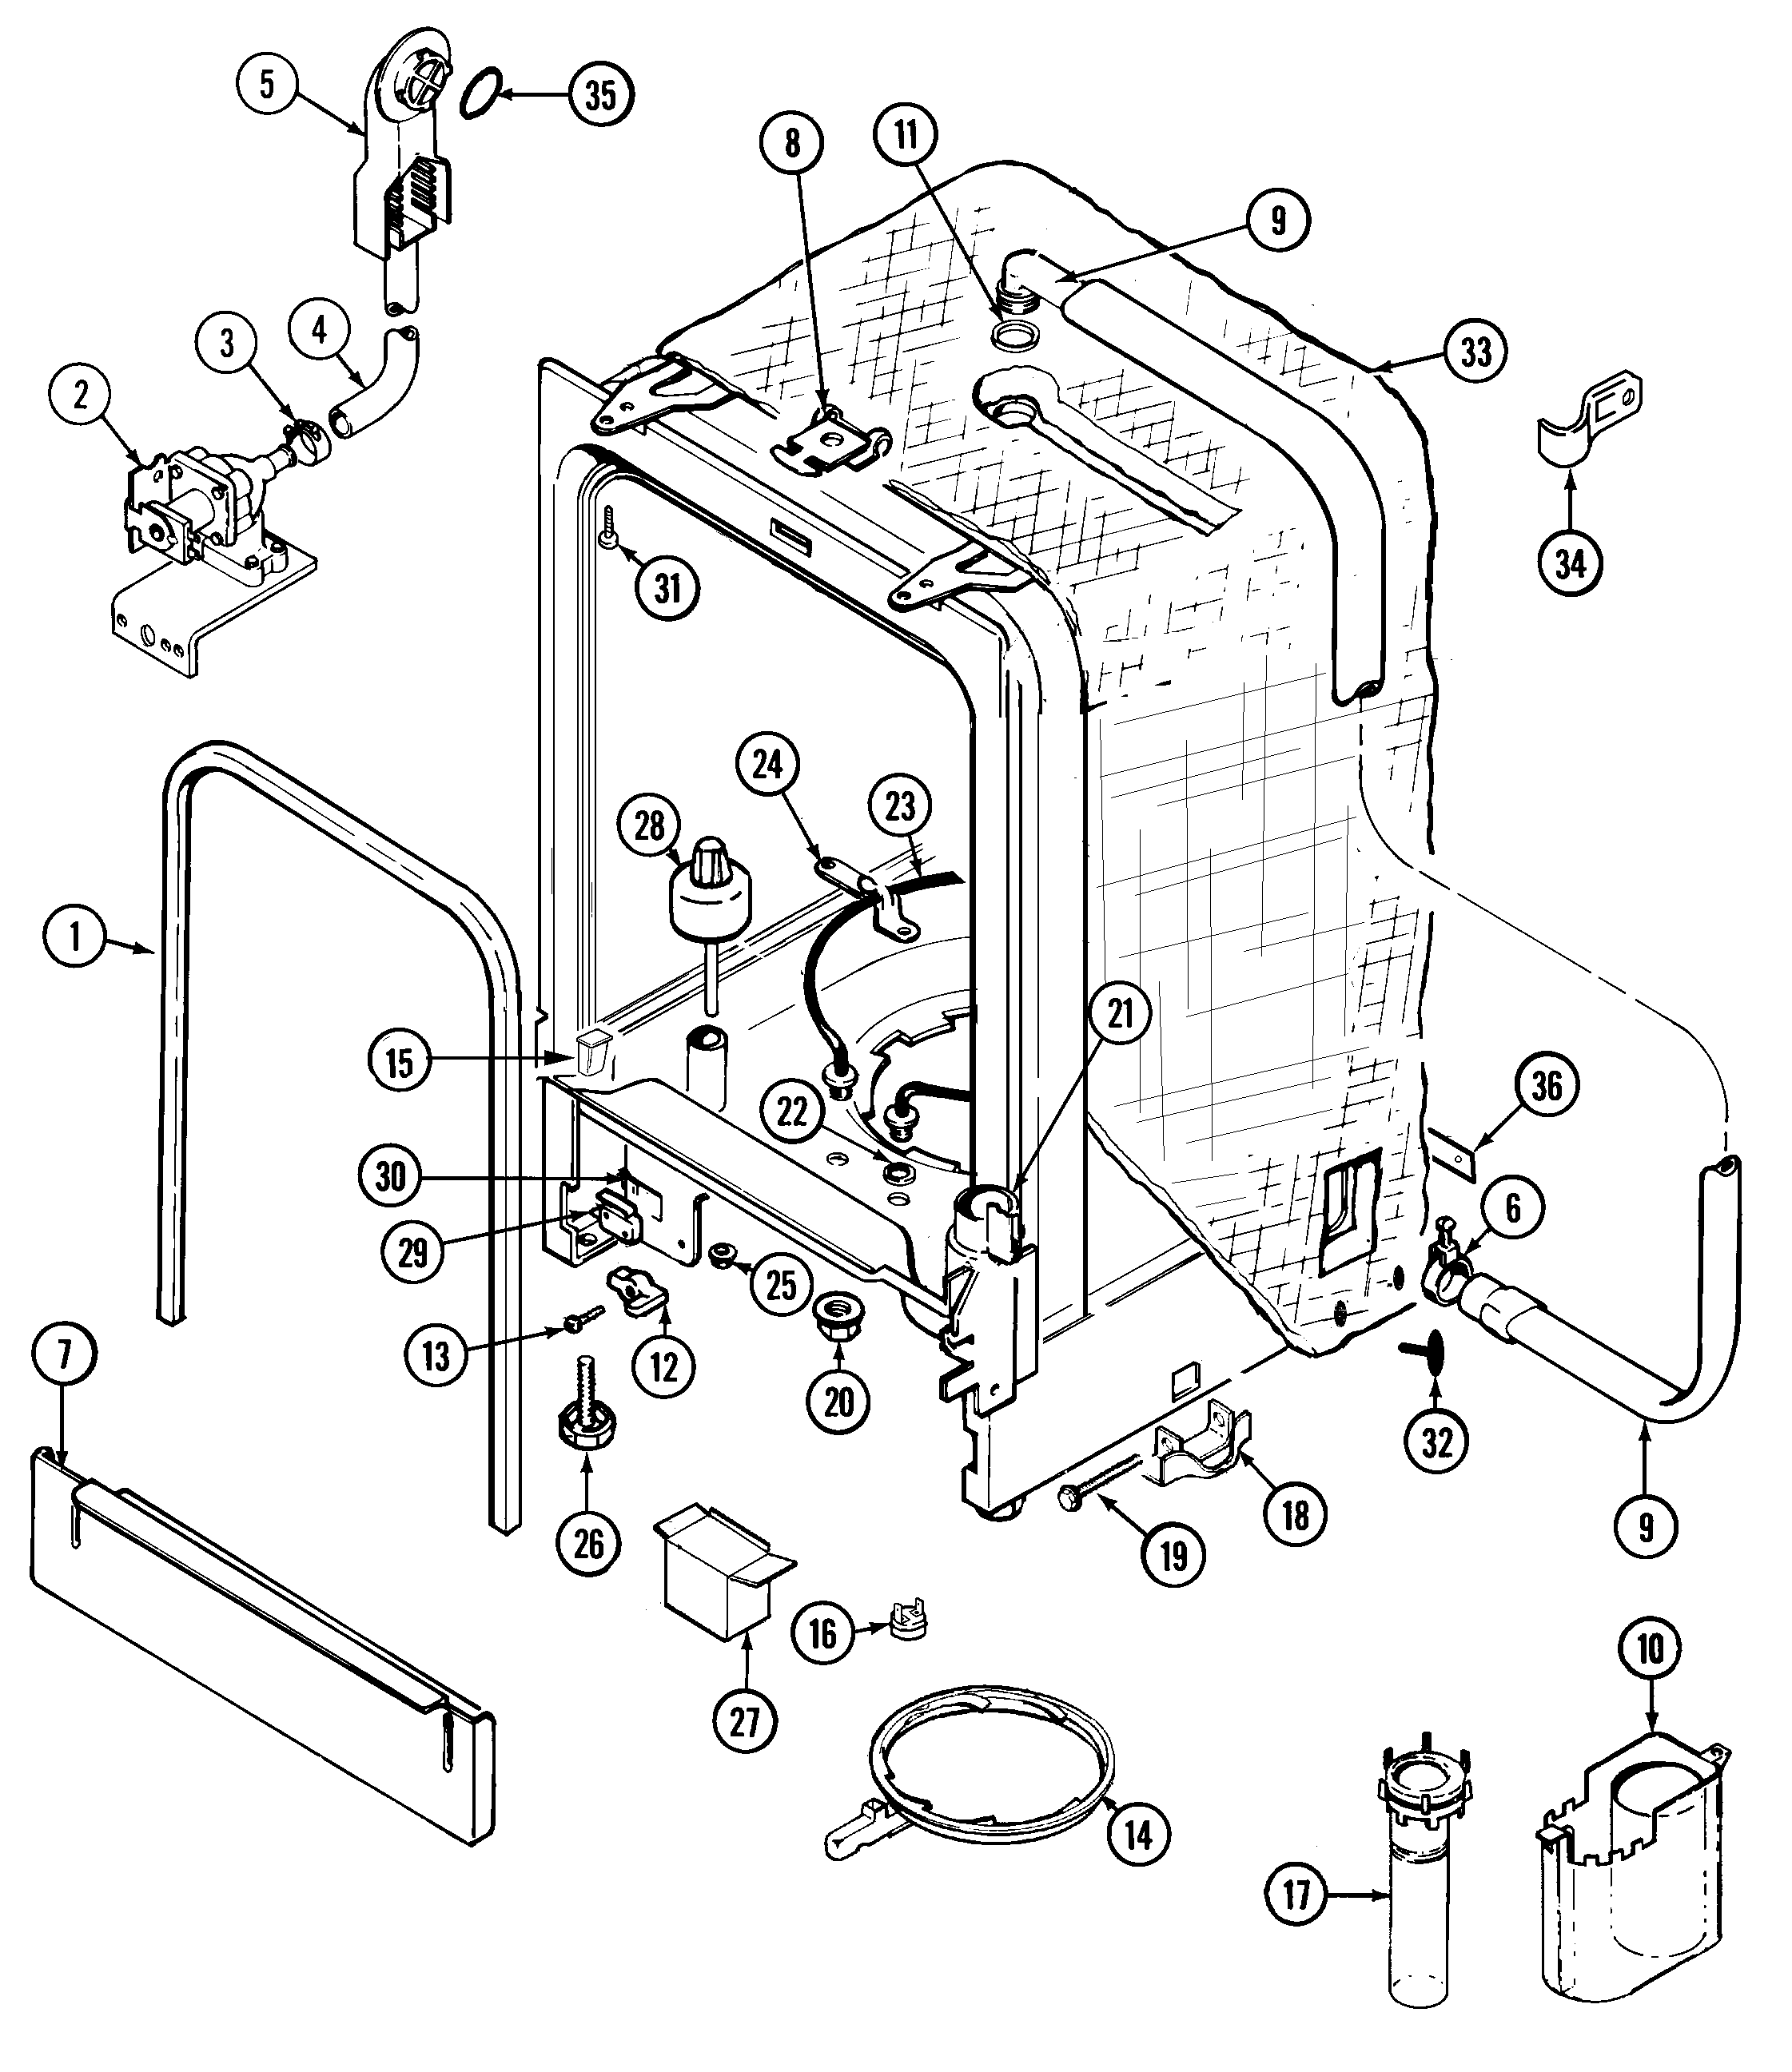 9ba19bd3 b803 4373 9a39 86a633963df1_temp1 maytag dishwasher schematic diagrams maytag cre9830cde electric maytag dishwasher wiring diagram at creativeand.co